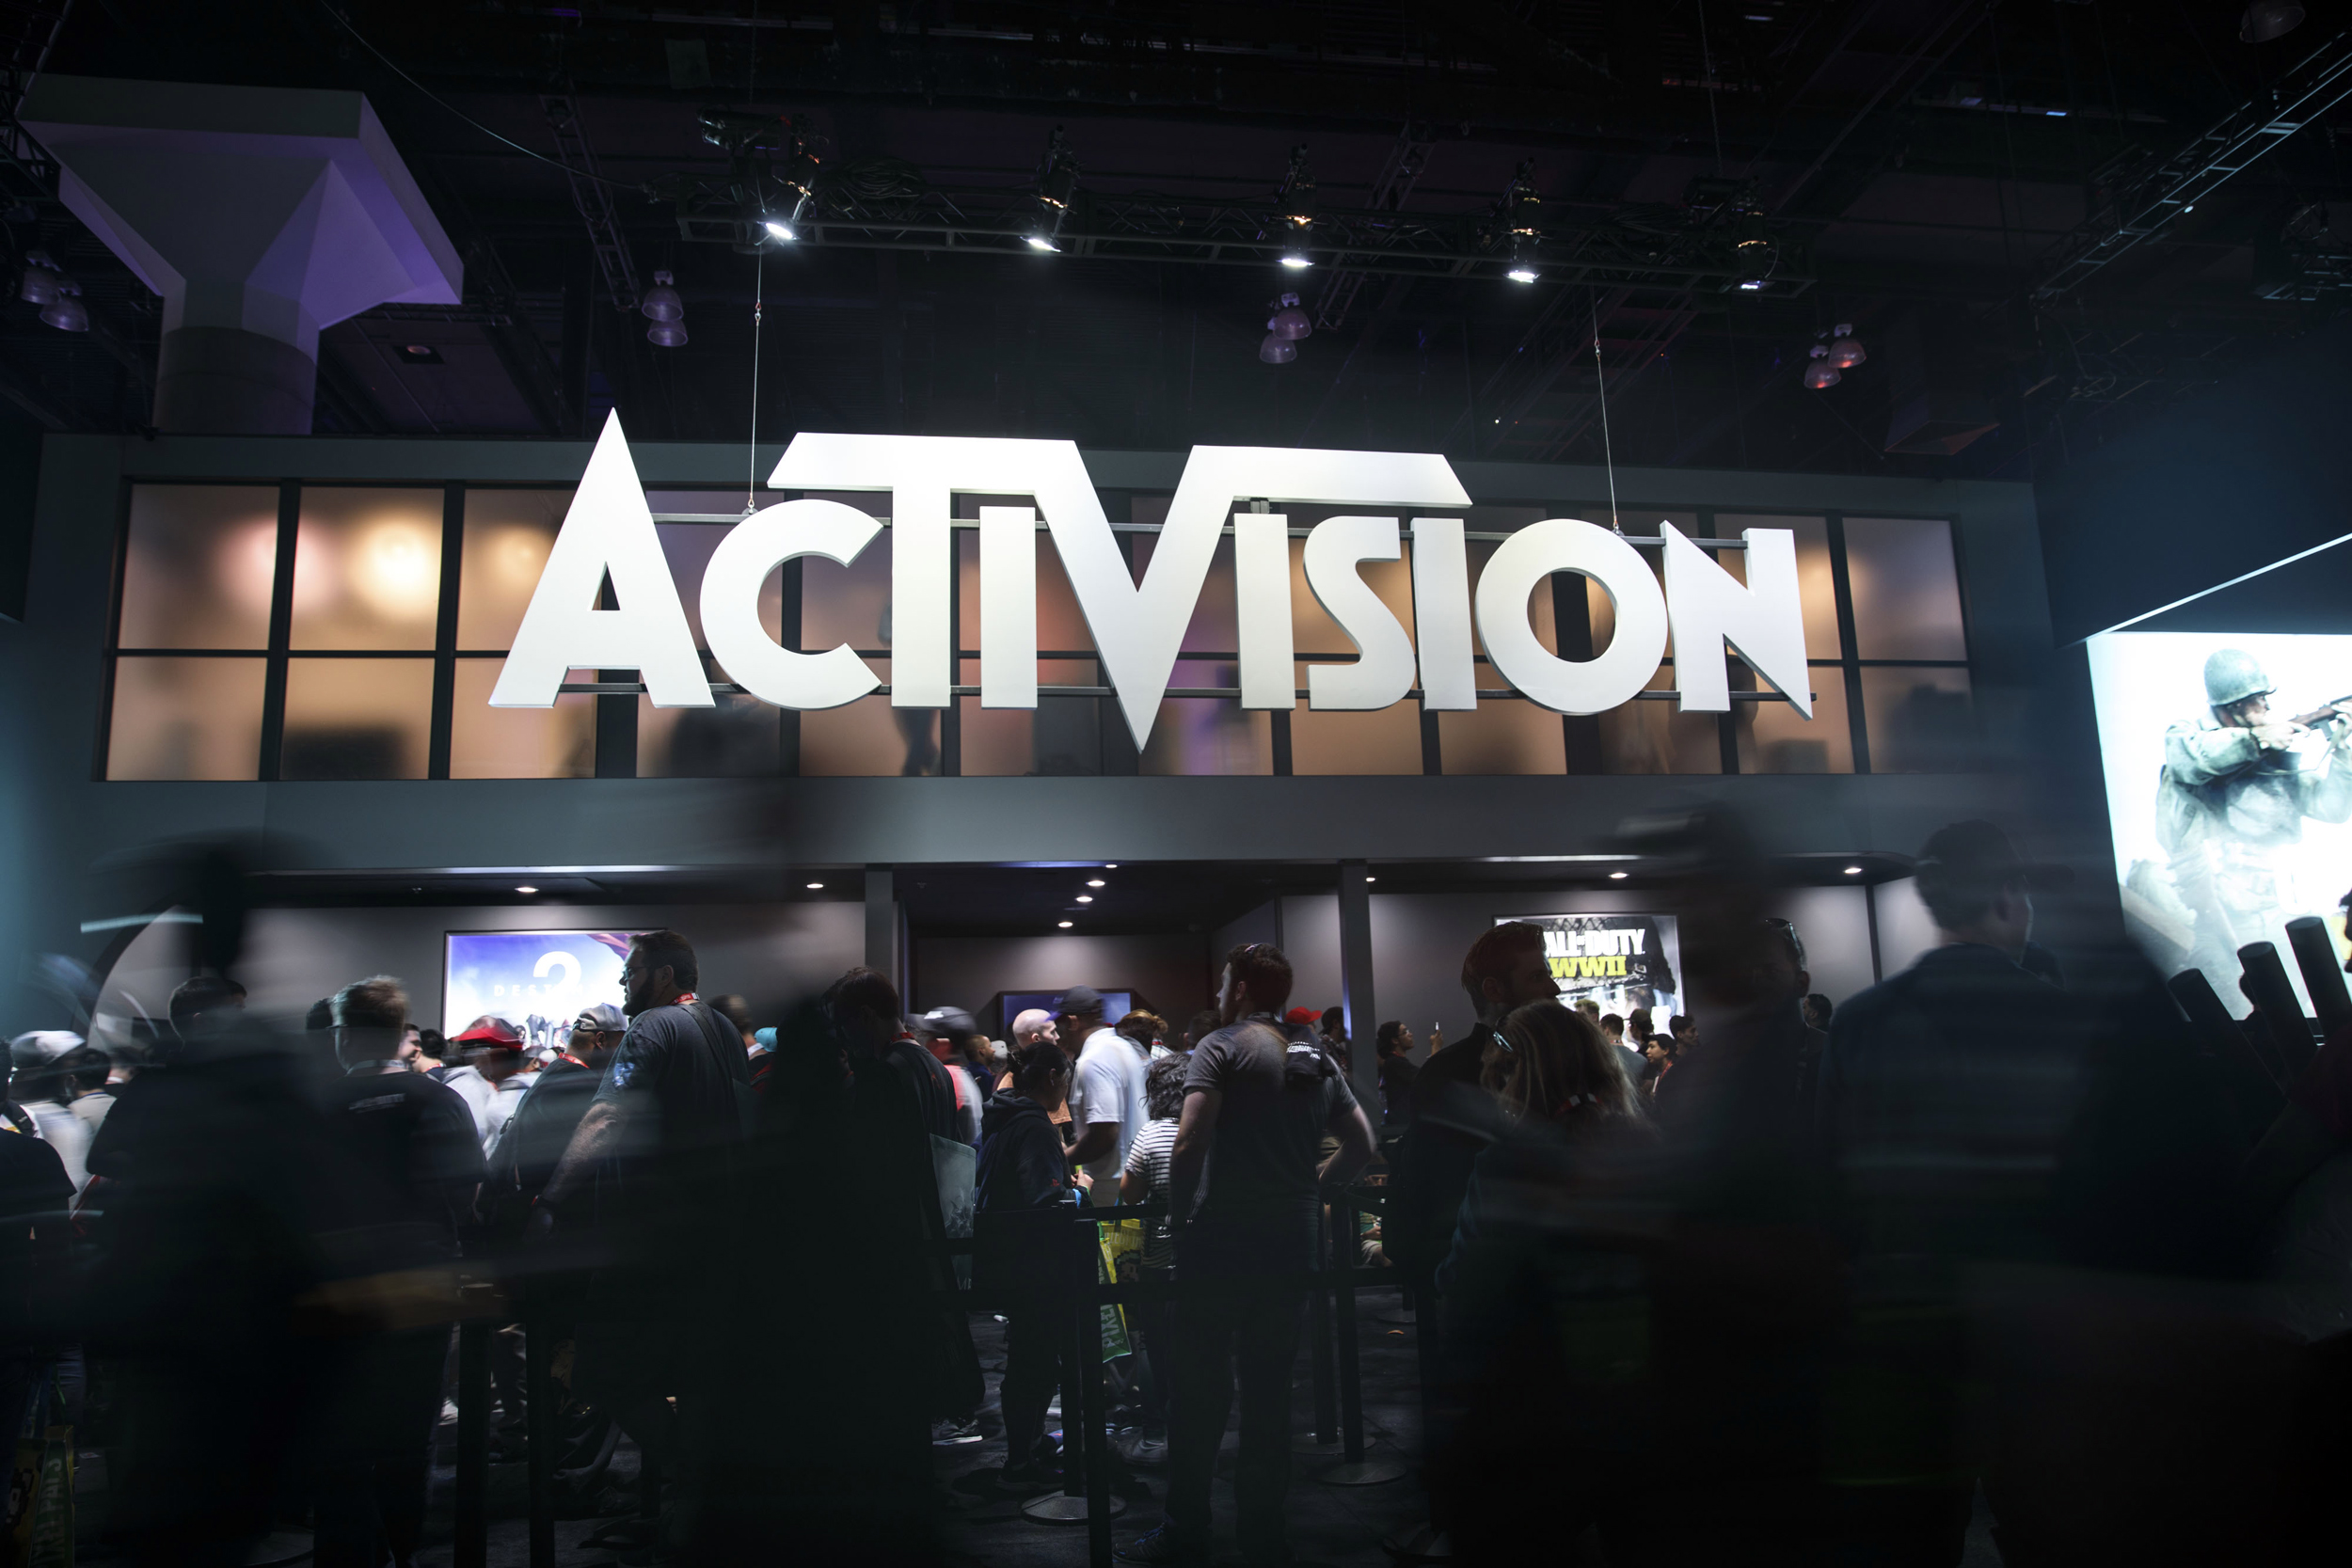 Activision Blizzard workers walk out after sexual harassment lawsuit